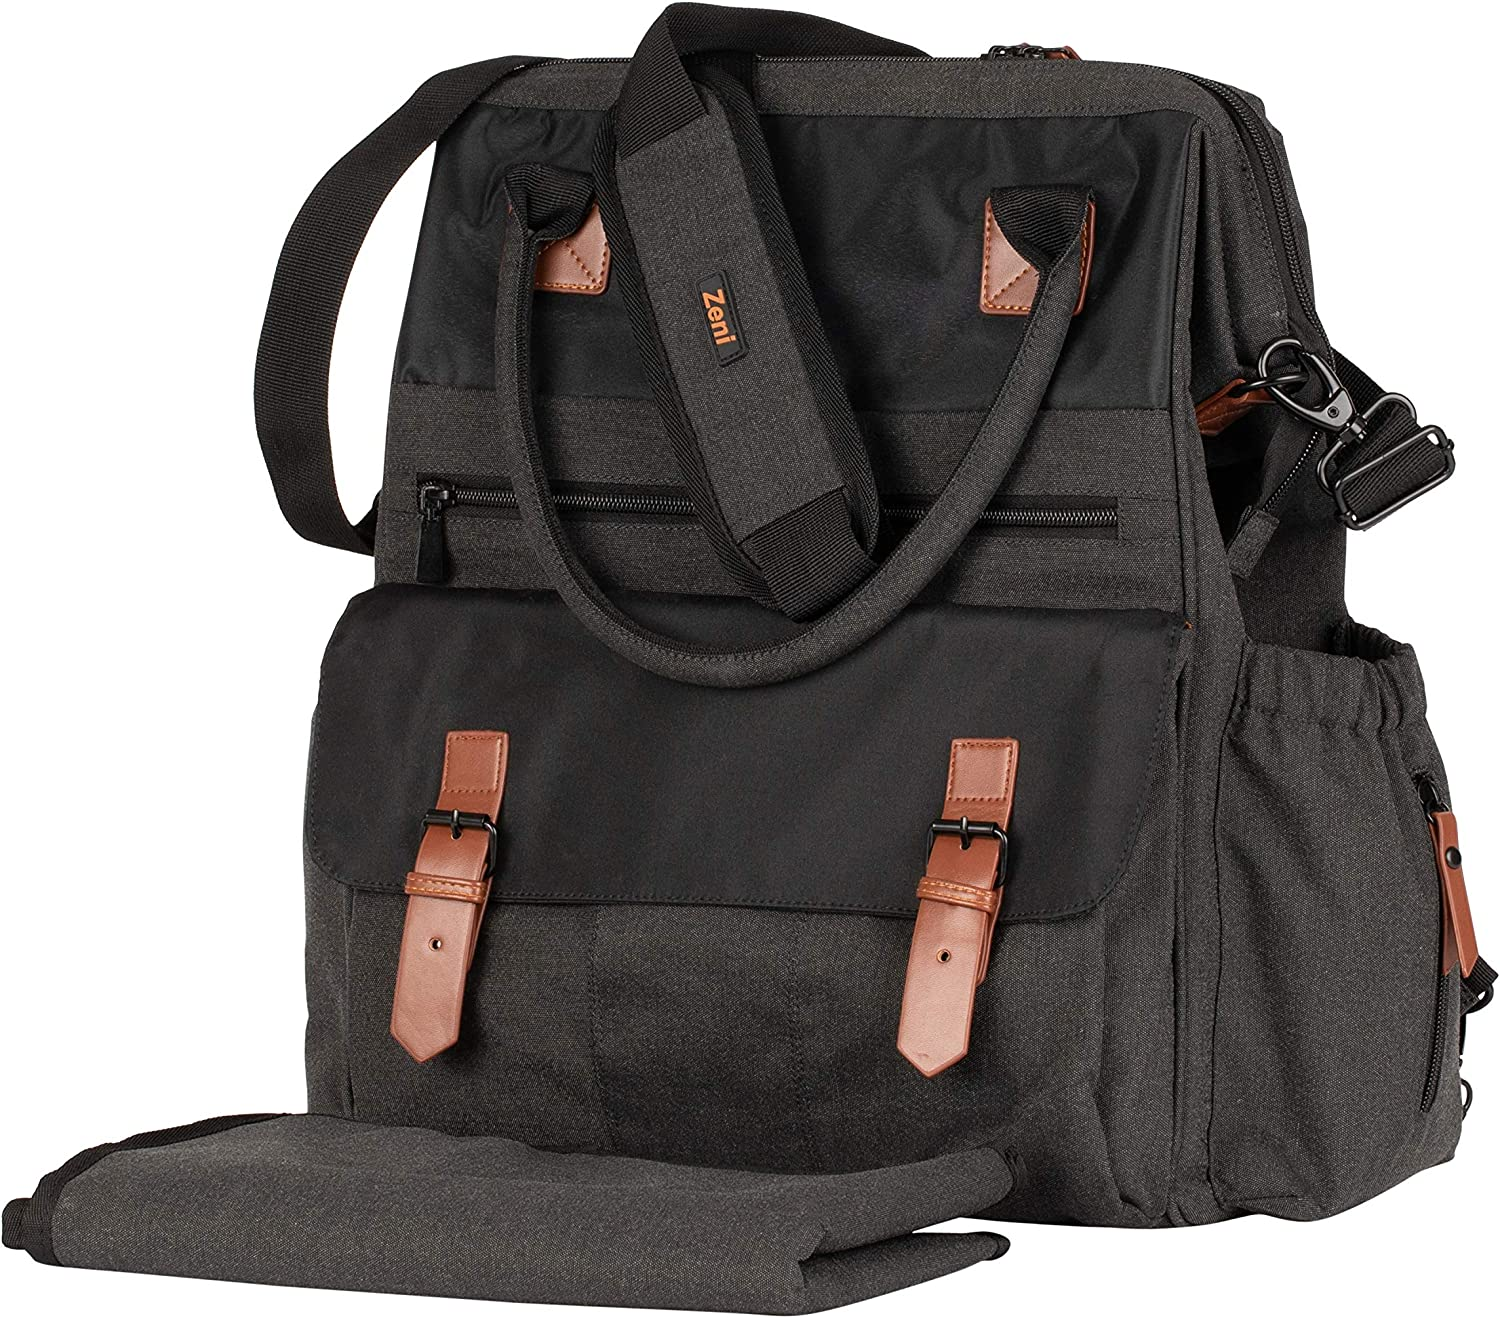 Zeni Diaper Bag Backpack with Changing Pad Multi Function